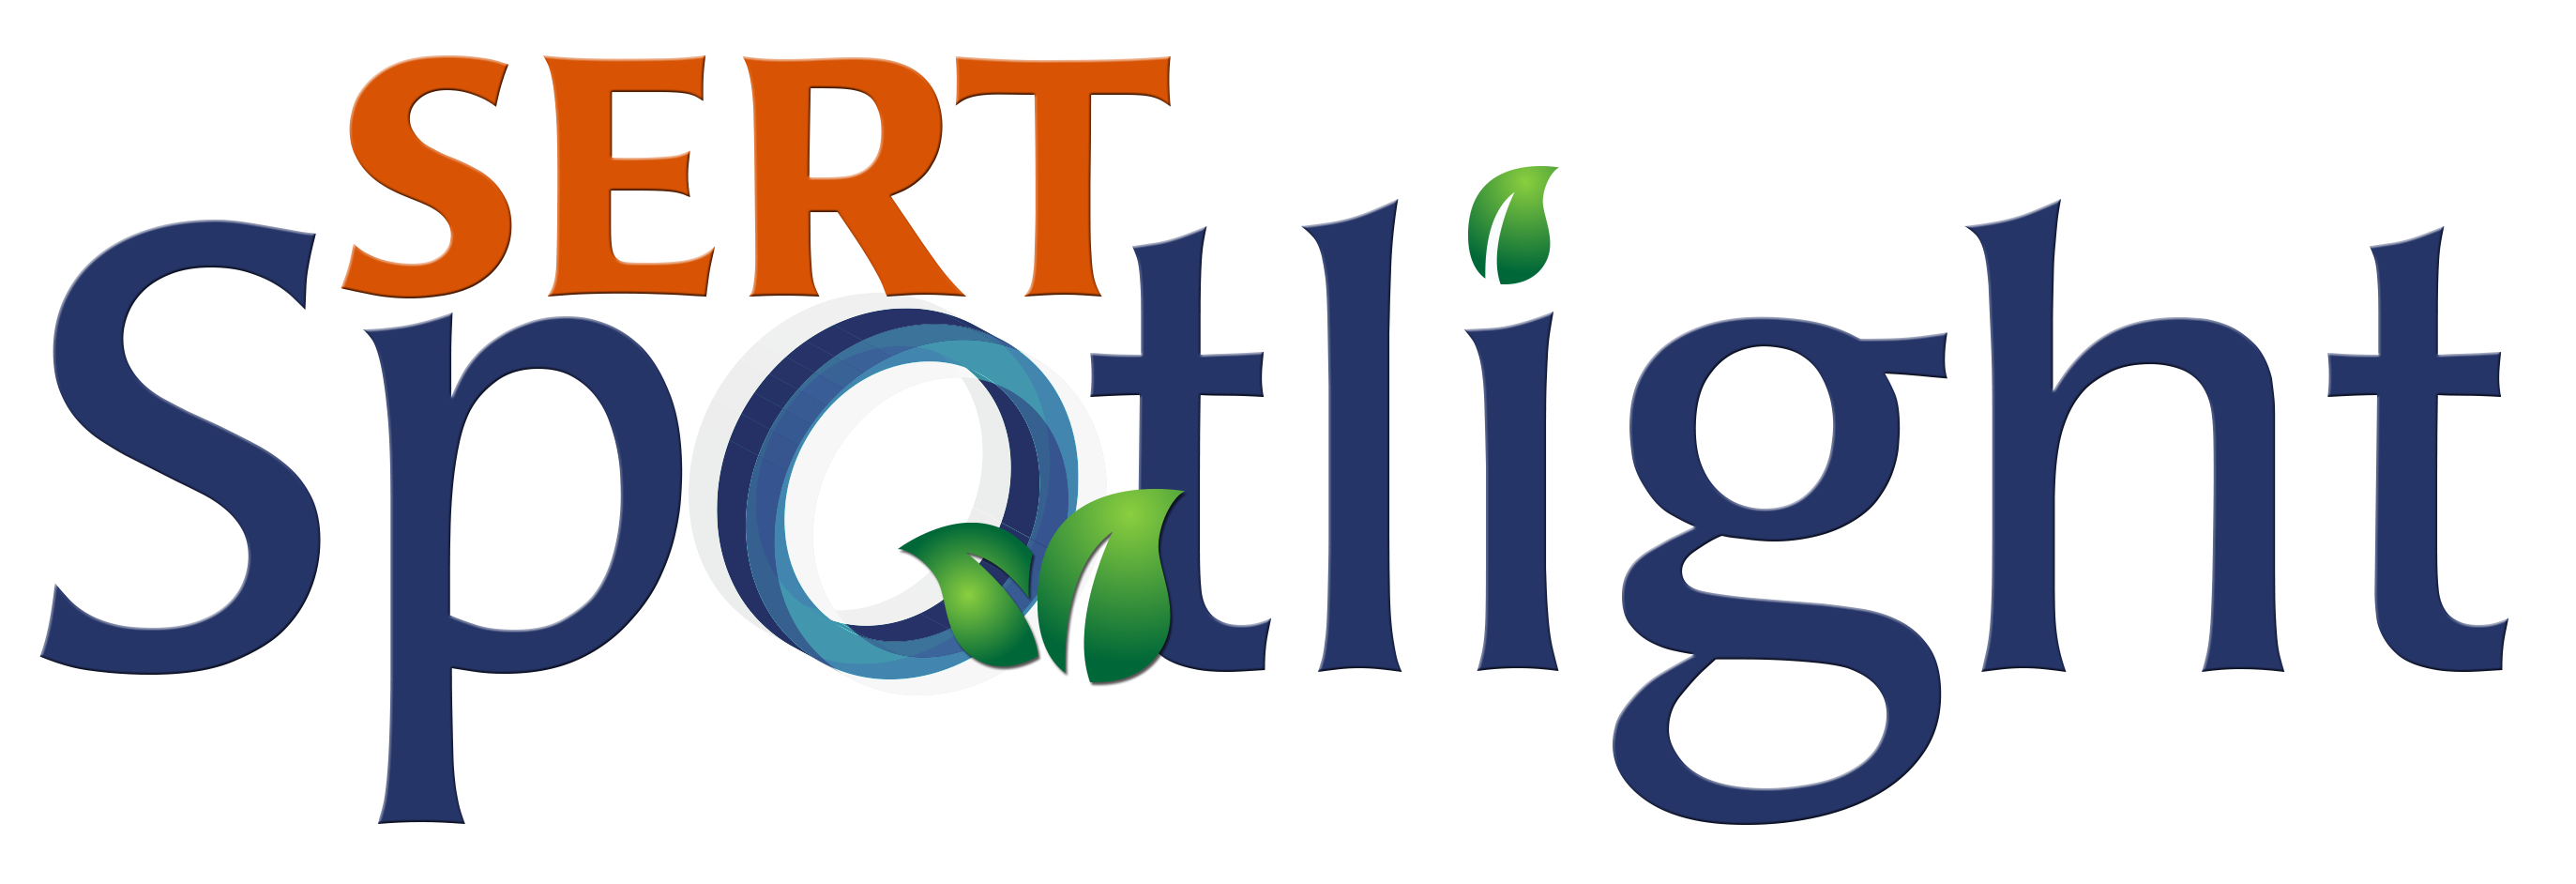 SERT Spotlight logo features title text and leaves and a 3D letter O